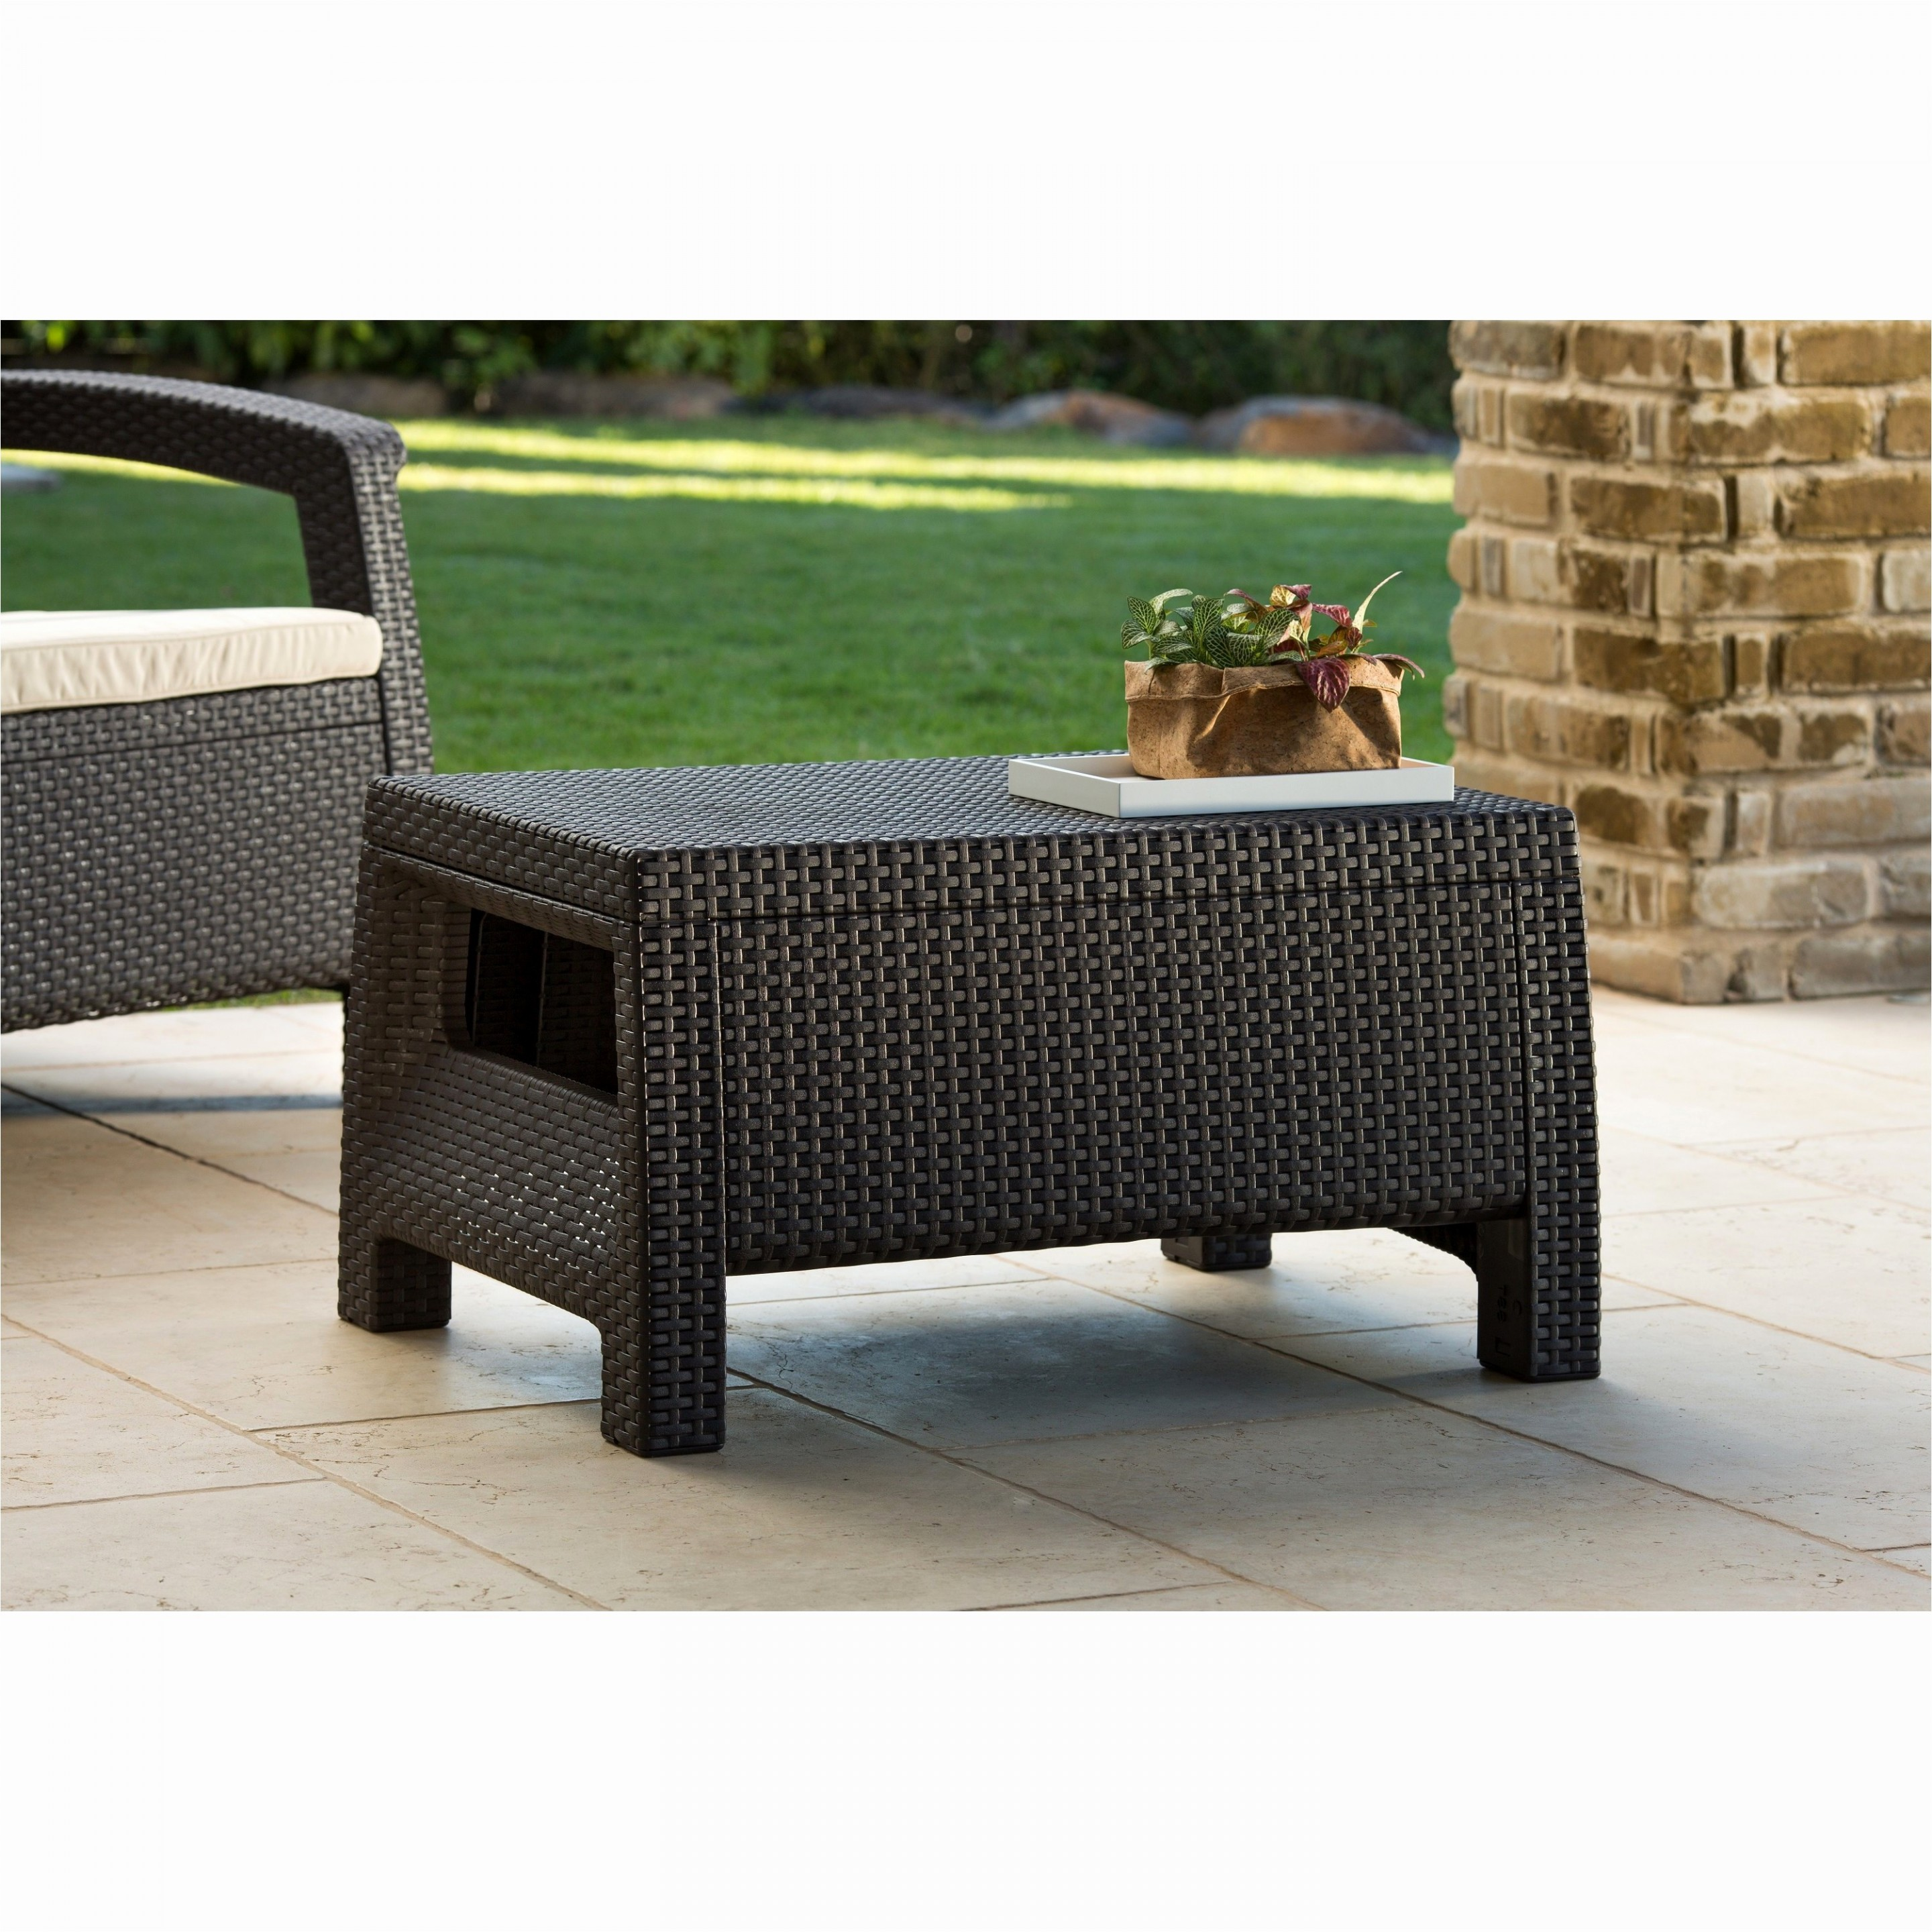 modern outdoor coffee table elegant patio end tables fresh plastic lovely rowan small side stunningly beautiful grey metal light shades decorator tablecloths aluminum legs wooden